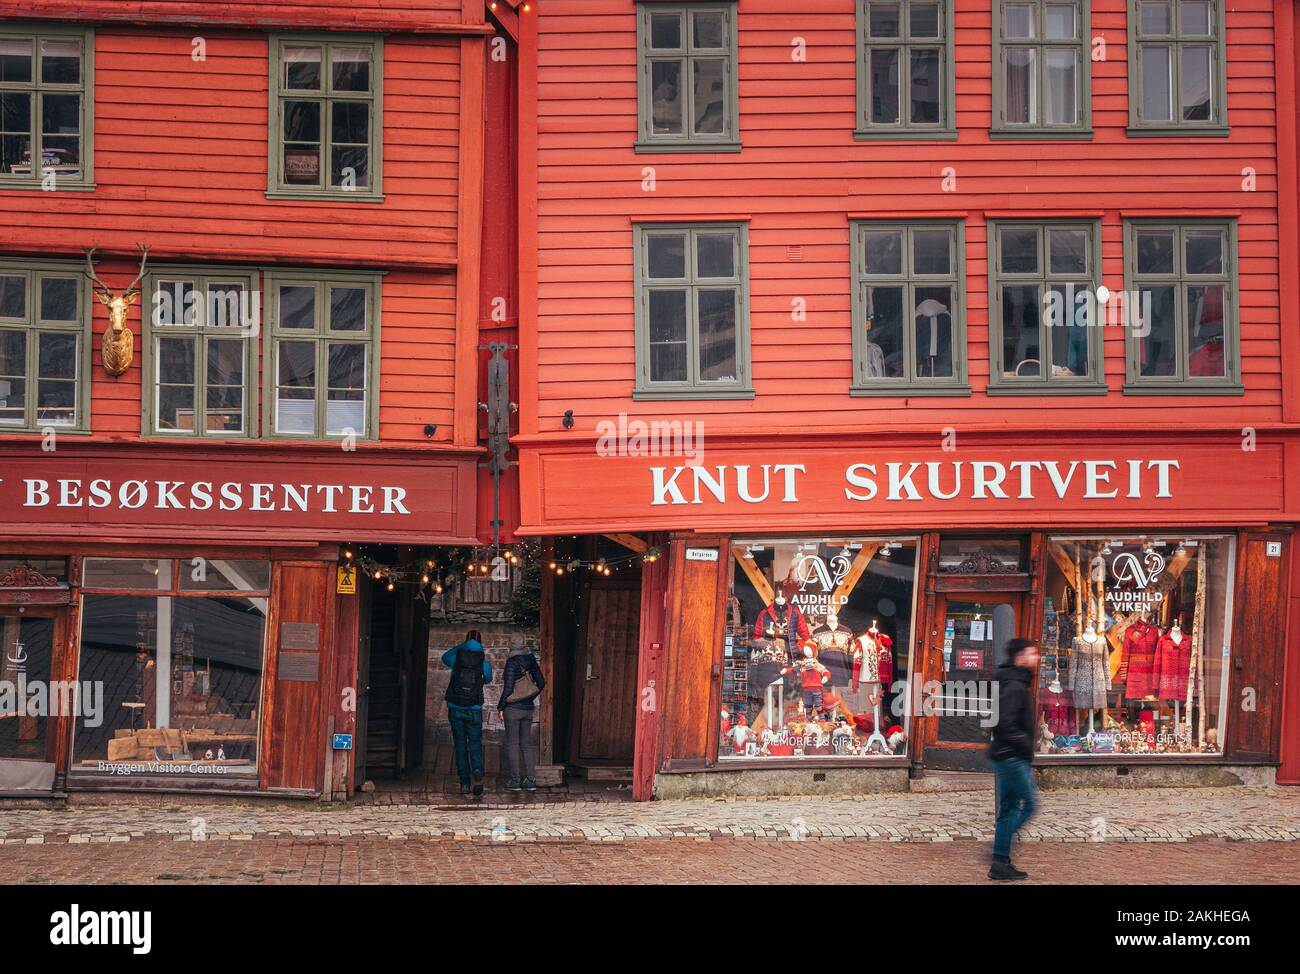 Bryggen in Bergen is a UNESCO World Heritage site and the most visited tourist attraction in Norway, This is at Winter time. Stock Photo